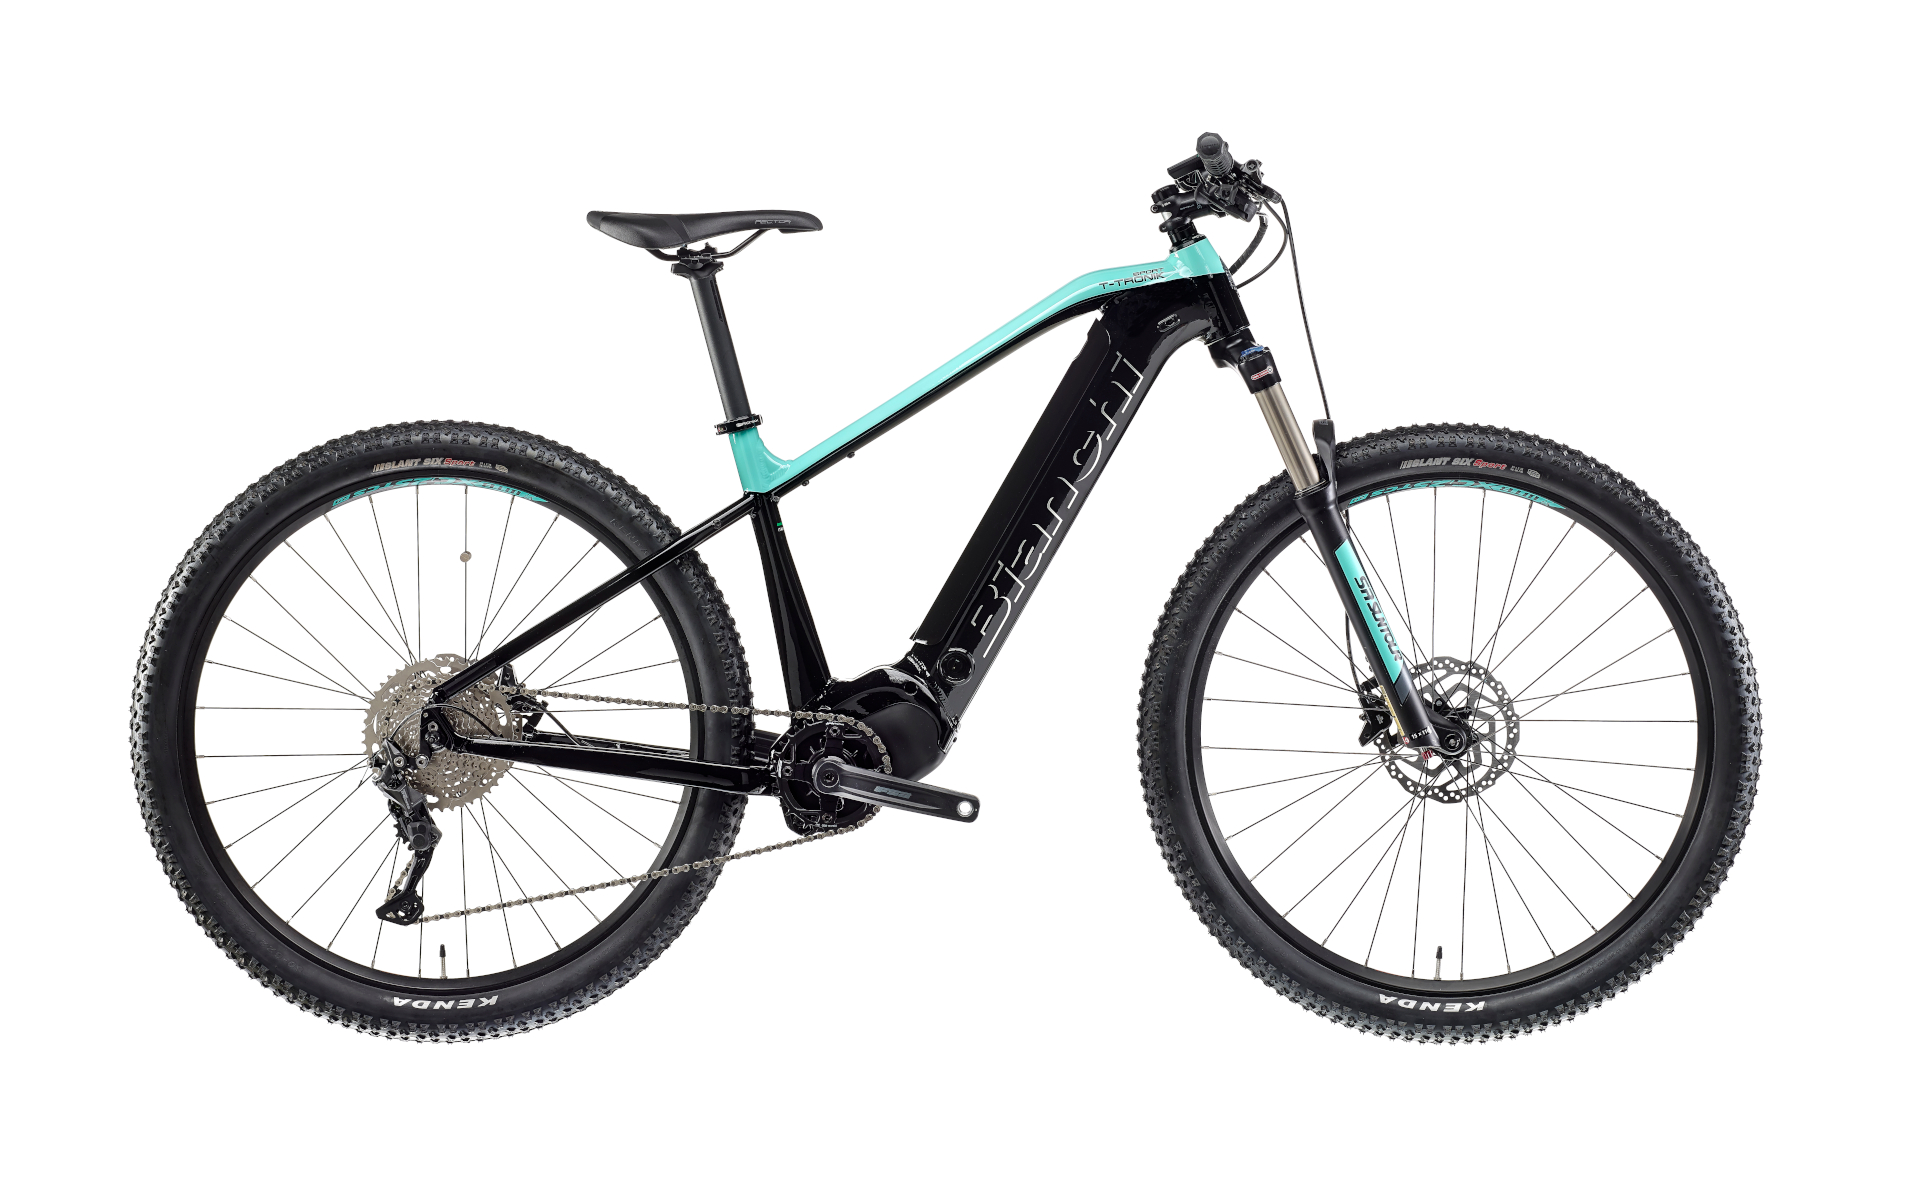 9.1 – Deore 1x10sp – Bianchi